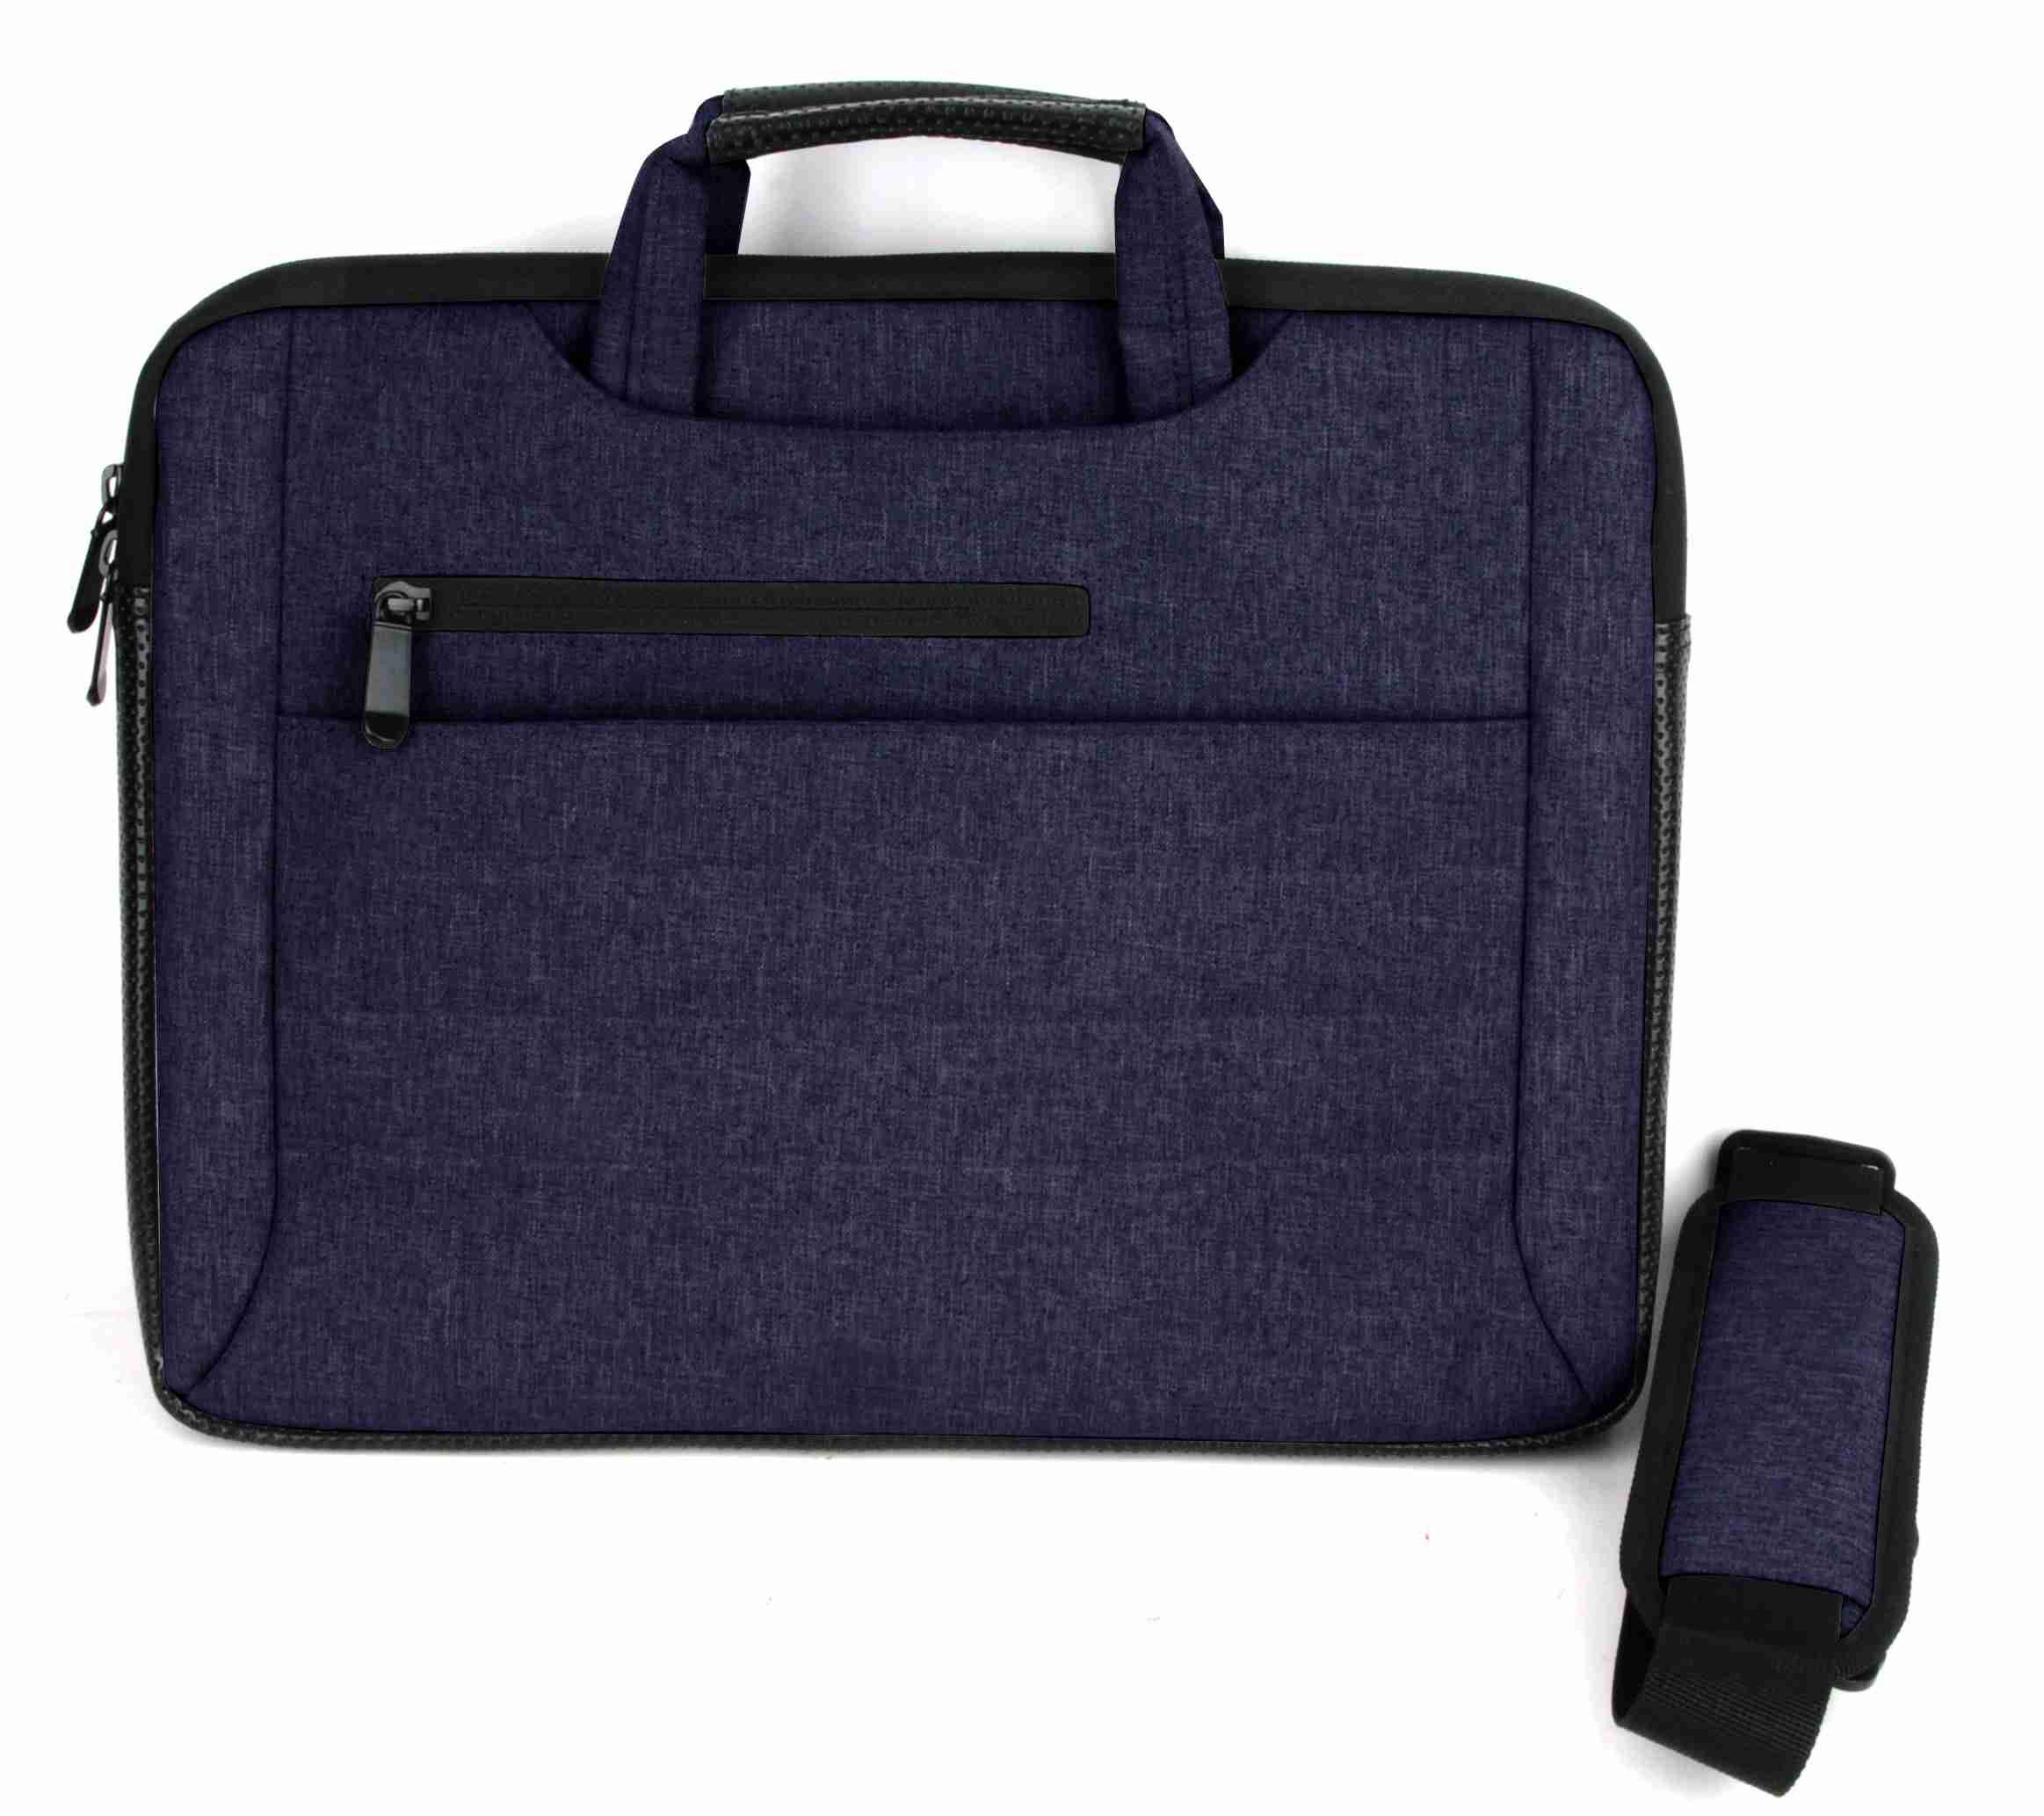 "Techwaves Universal 13-14"" Laptop Bag Sleeve 2 in 1 Business Carrier, Laptop"